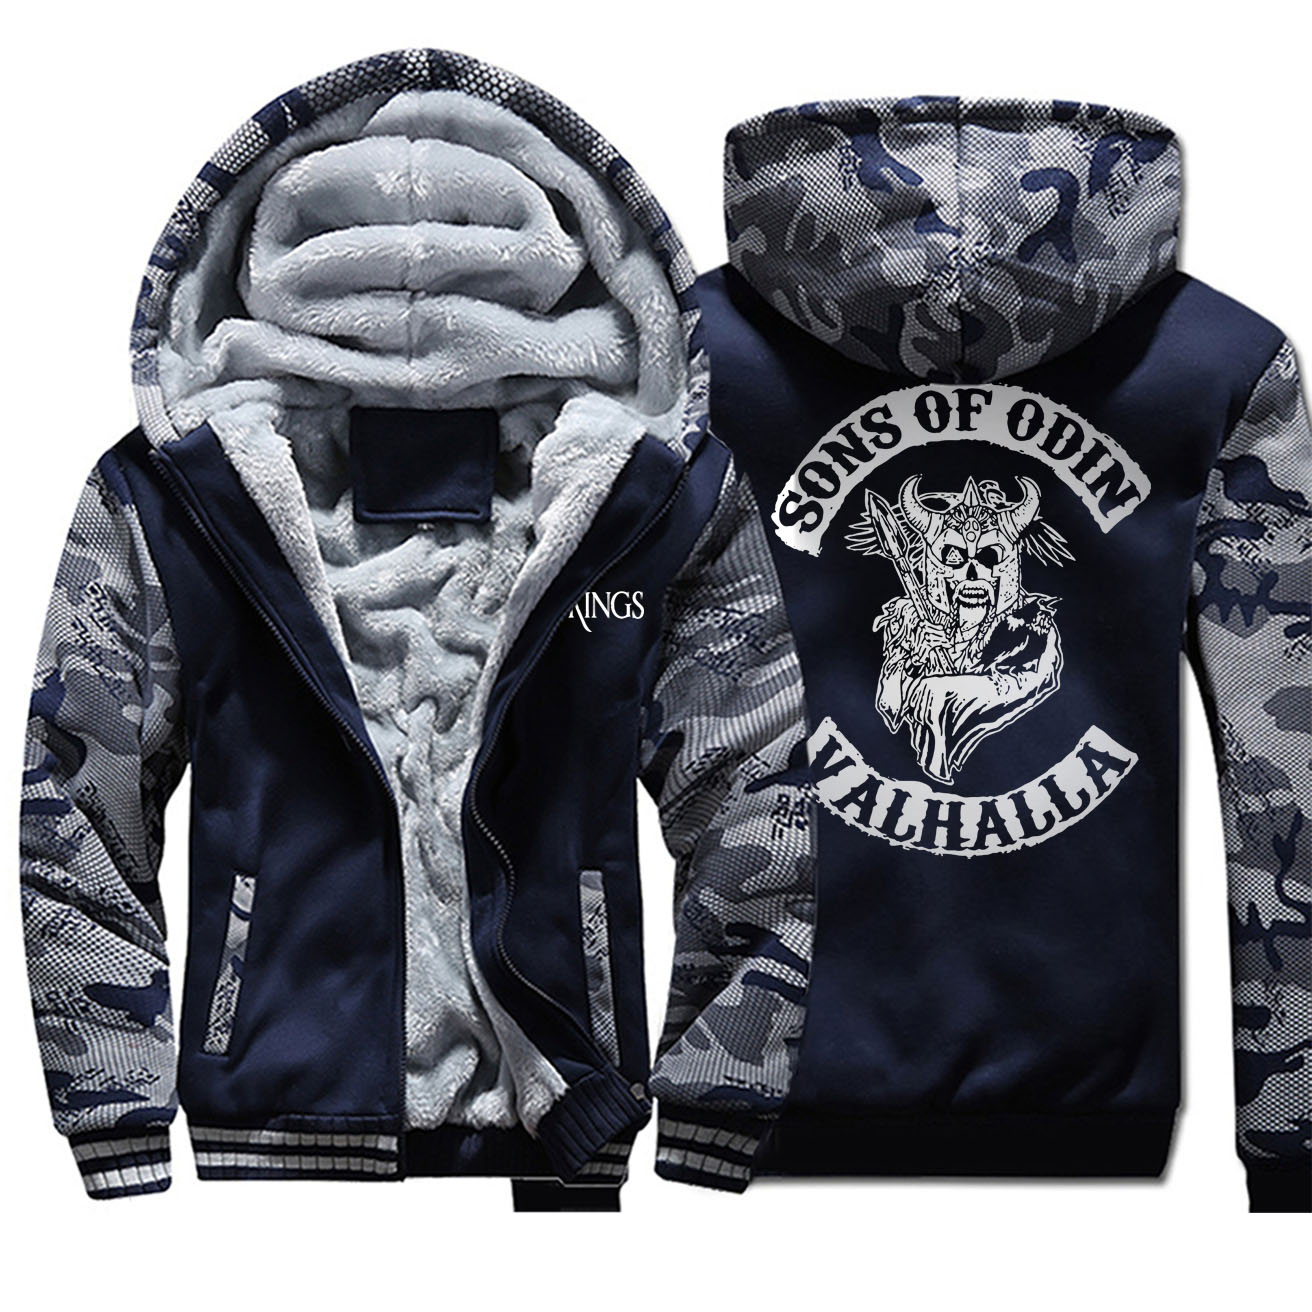 Odin Vikings Jackets Men Son Of Odin Hoodies Valhalla Sweatshirt Men Winter Thick Coats Sportswear Camo Sons Of VikingOutwear